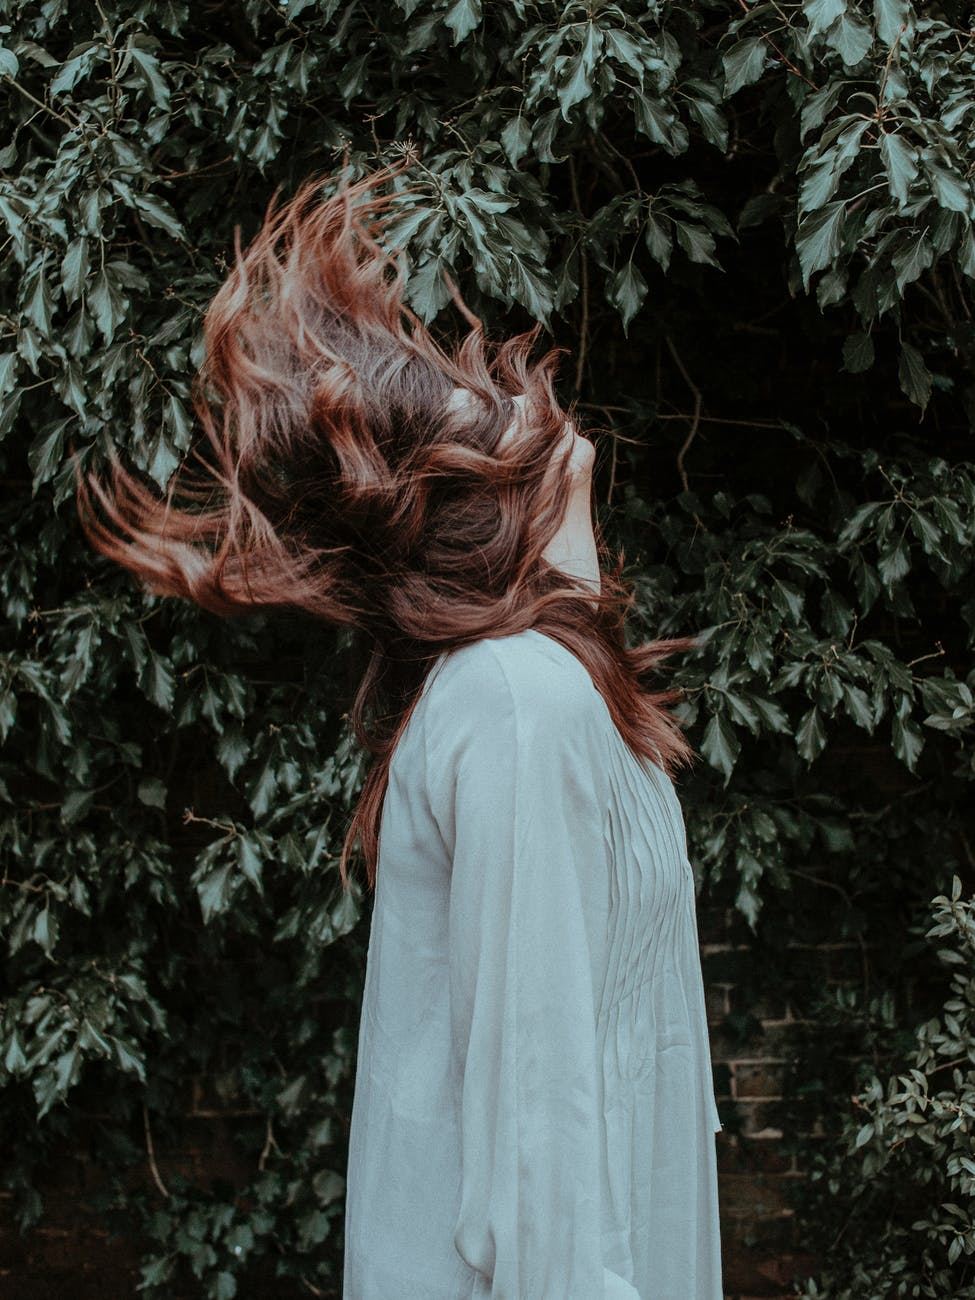 side view photo of woman in white long sleeve dress standing near green leafed plant doing hair flip